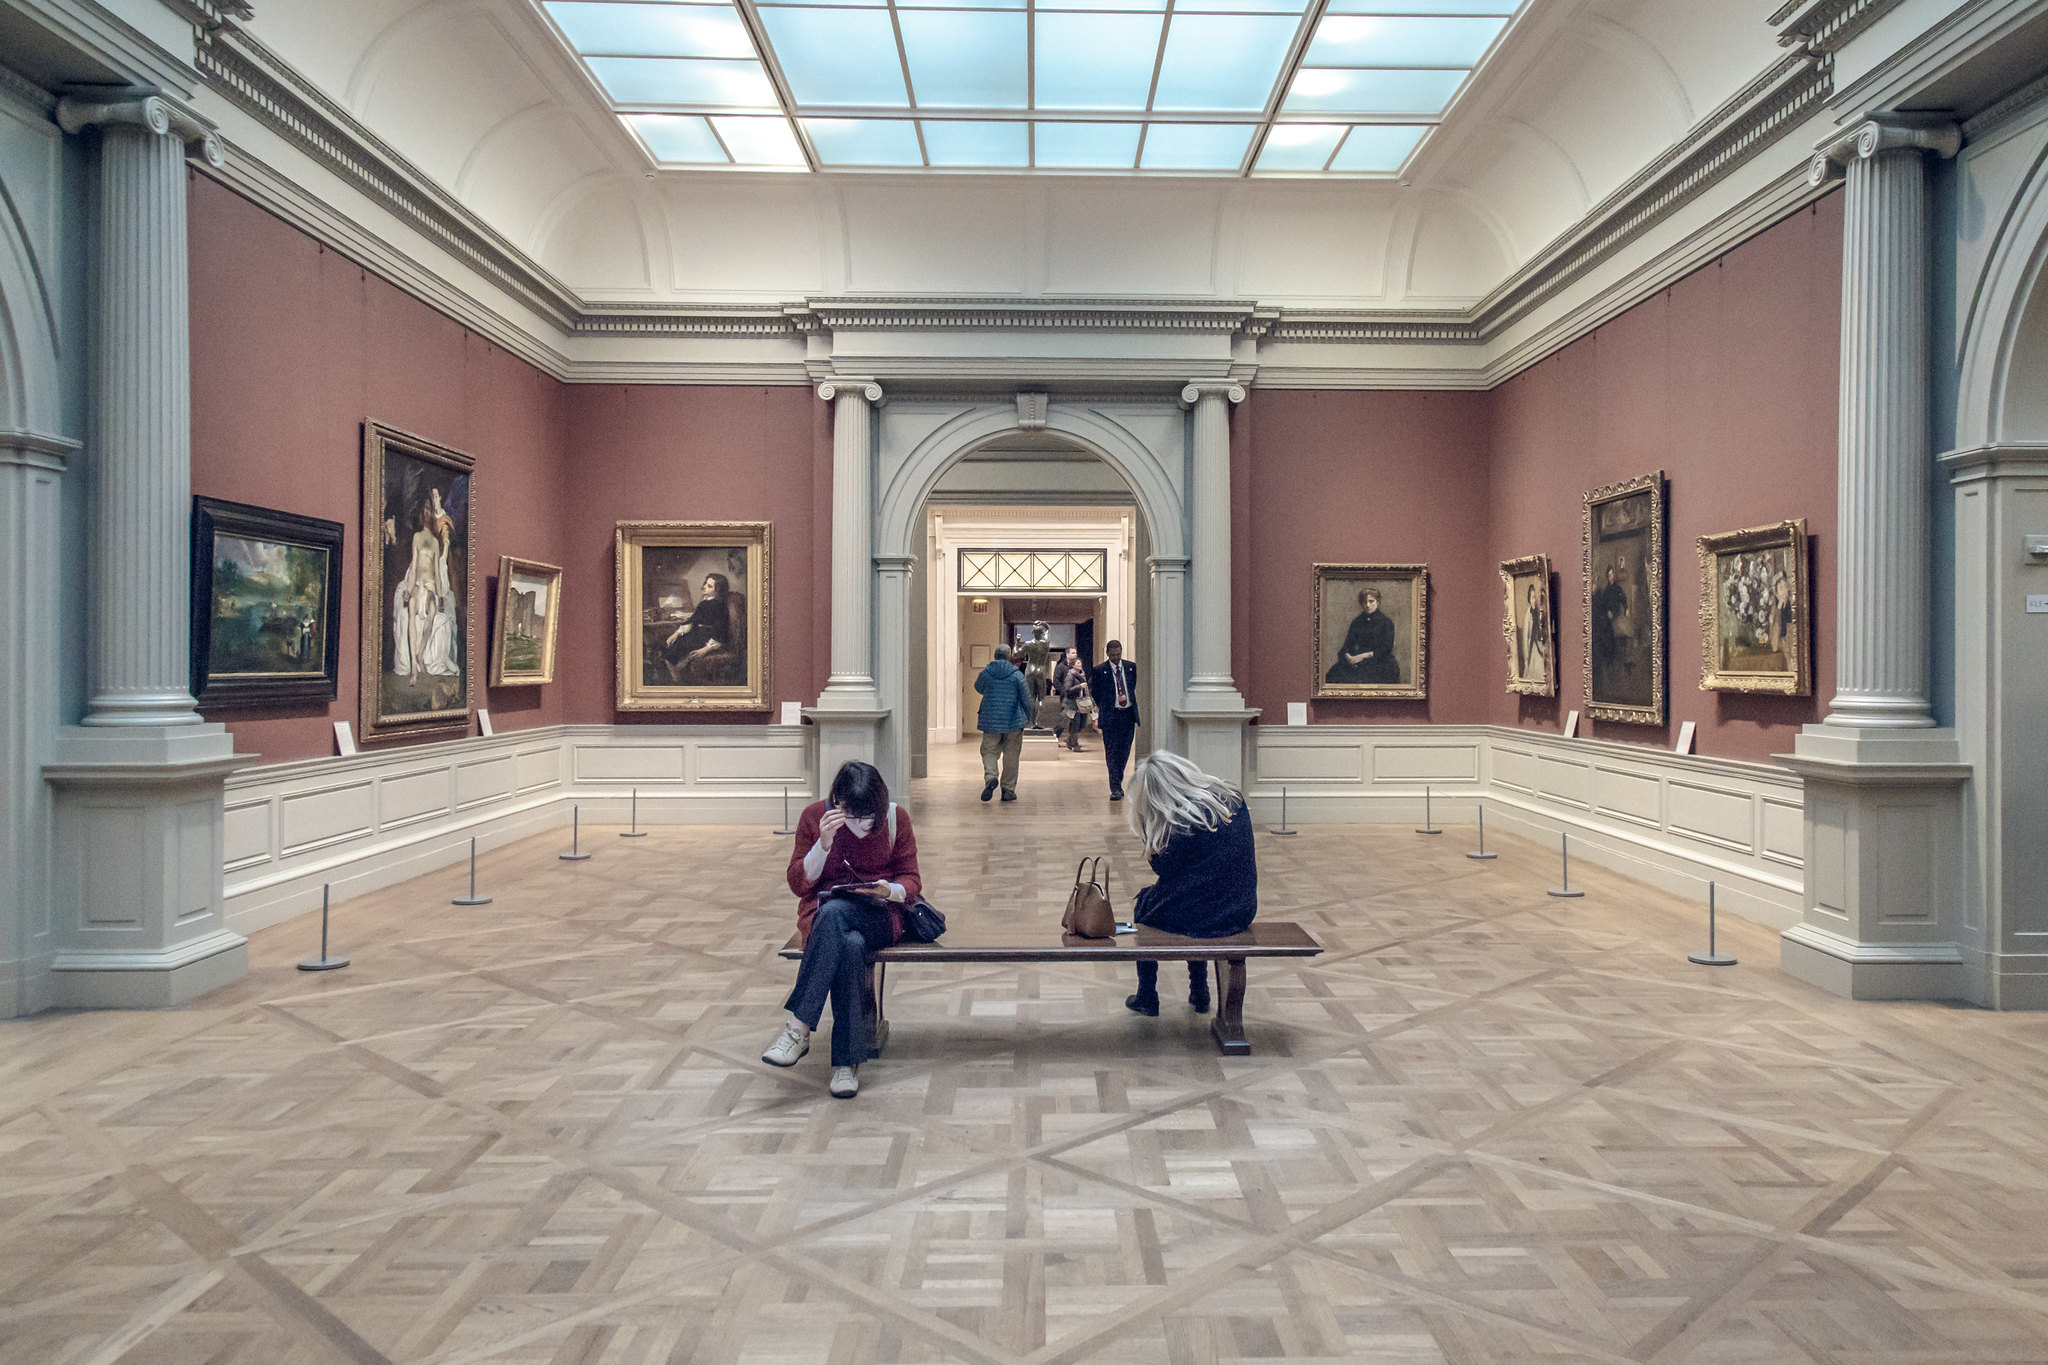 The MET - Over 5,000 years of art, more than 2 million works and more than 30 annual exhibits - The Met is one of the most famous museums in the world and the center of art in NYC. Home of the annual Met Gala,